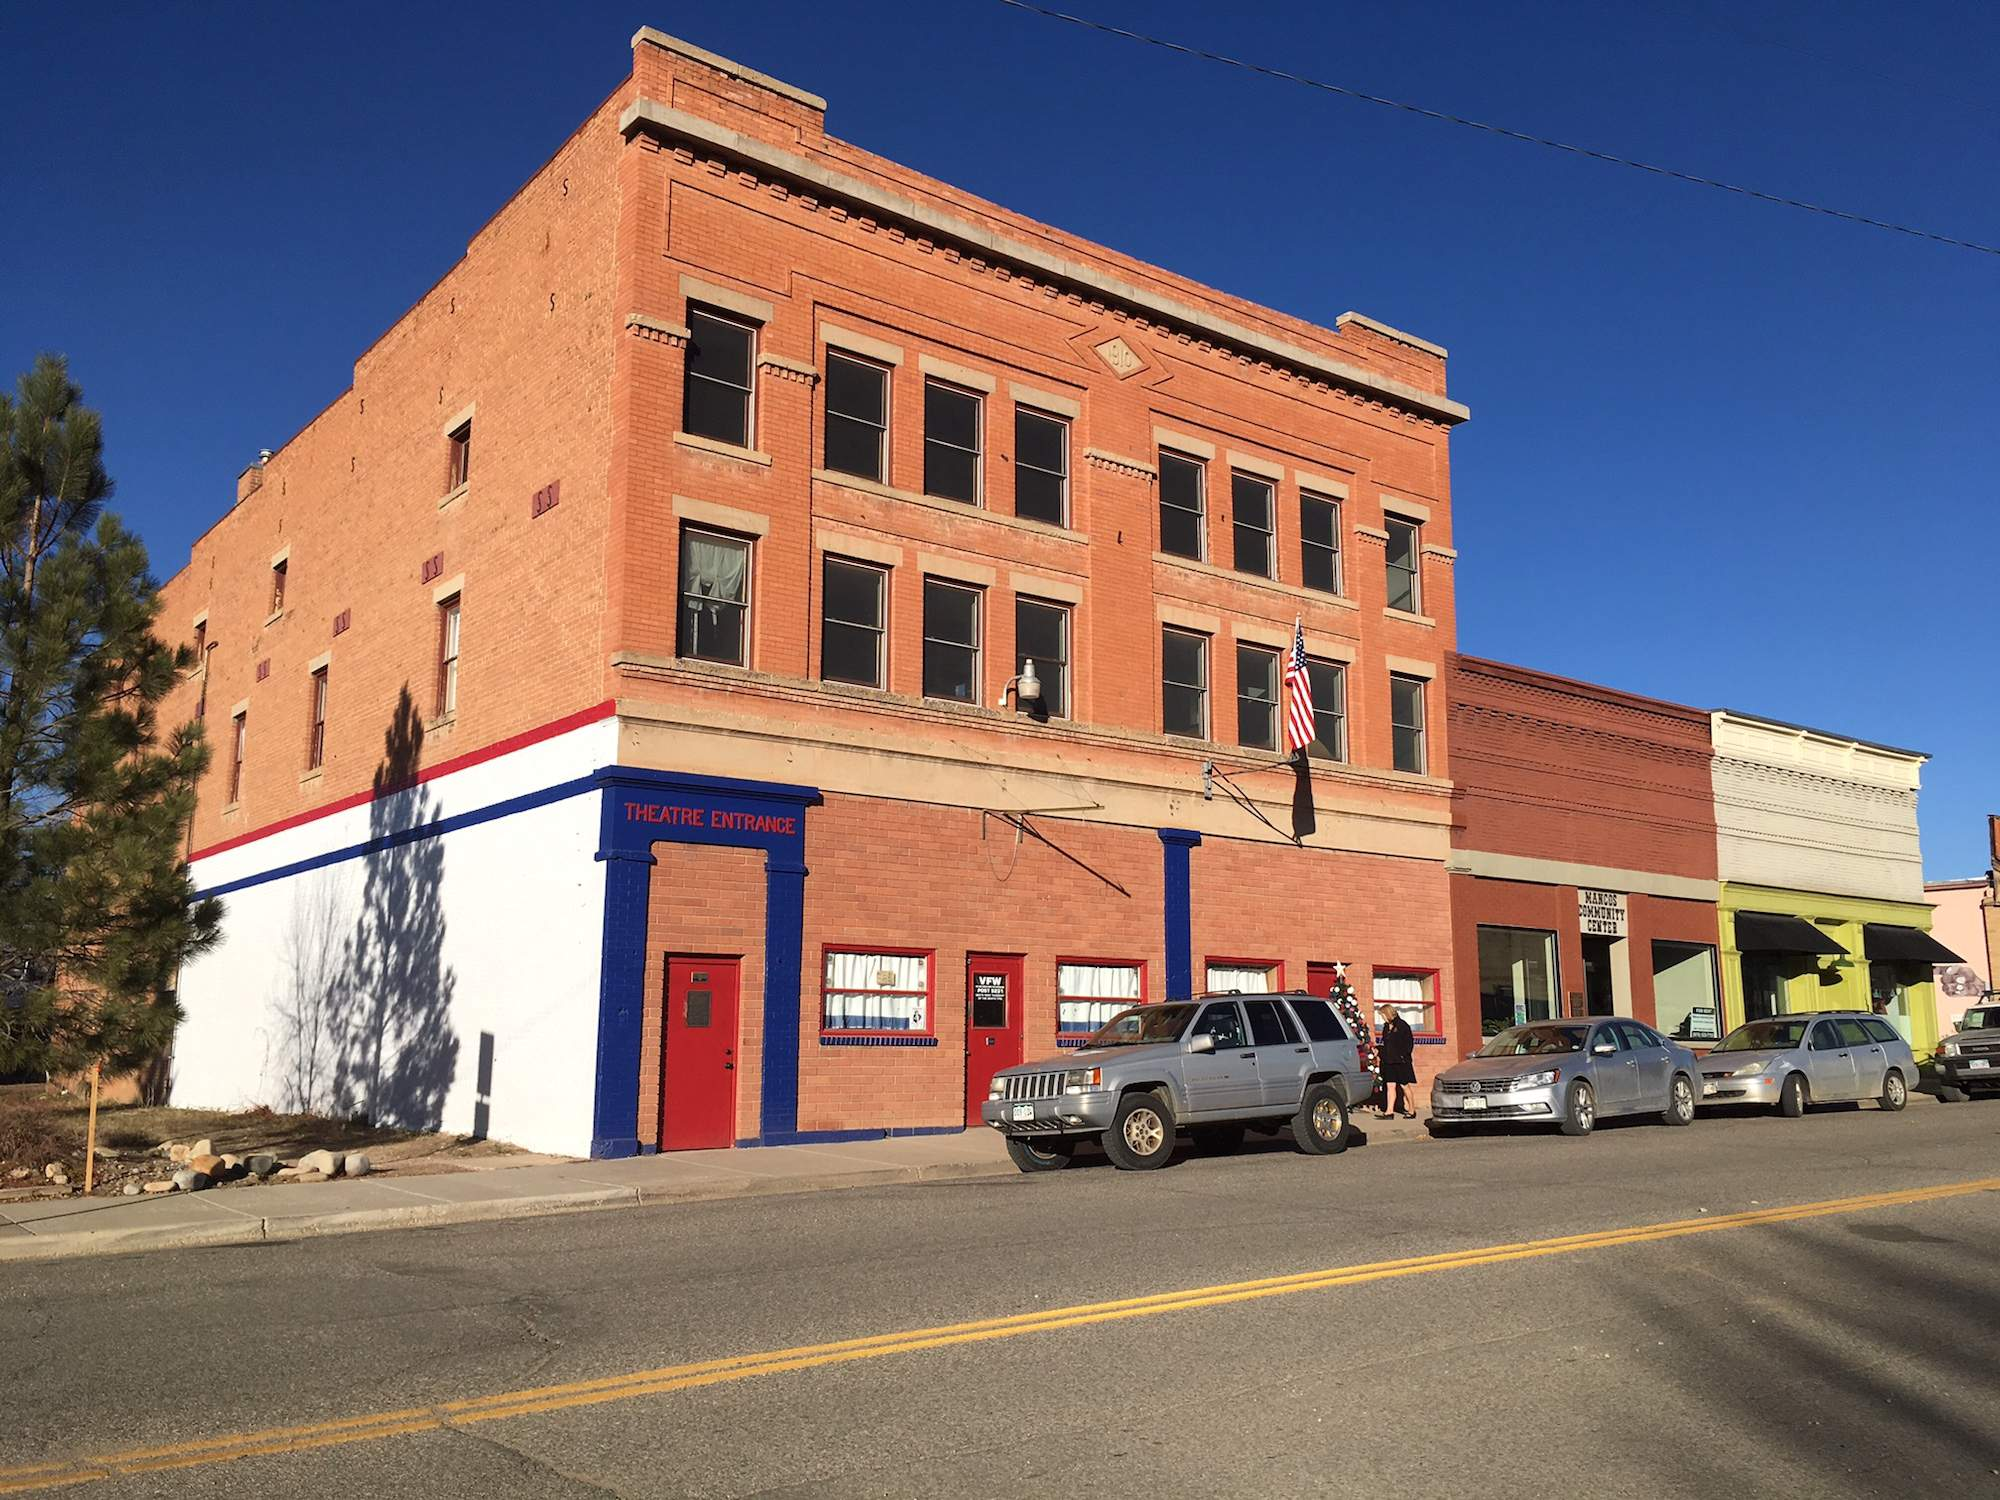 Delightful The Mancos Opera House Has Received A $32,409 Grant To Support Its  Renovation.